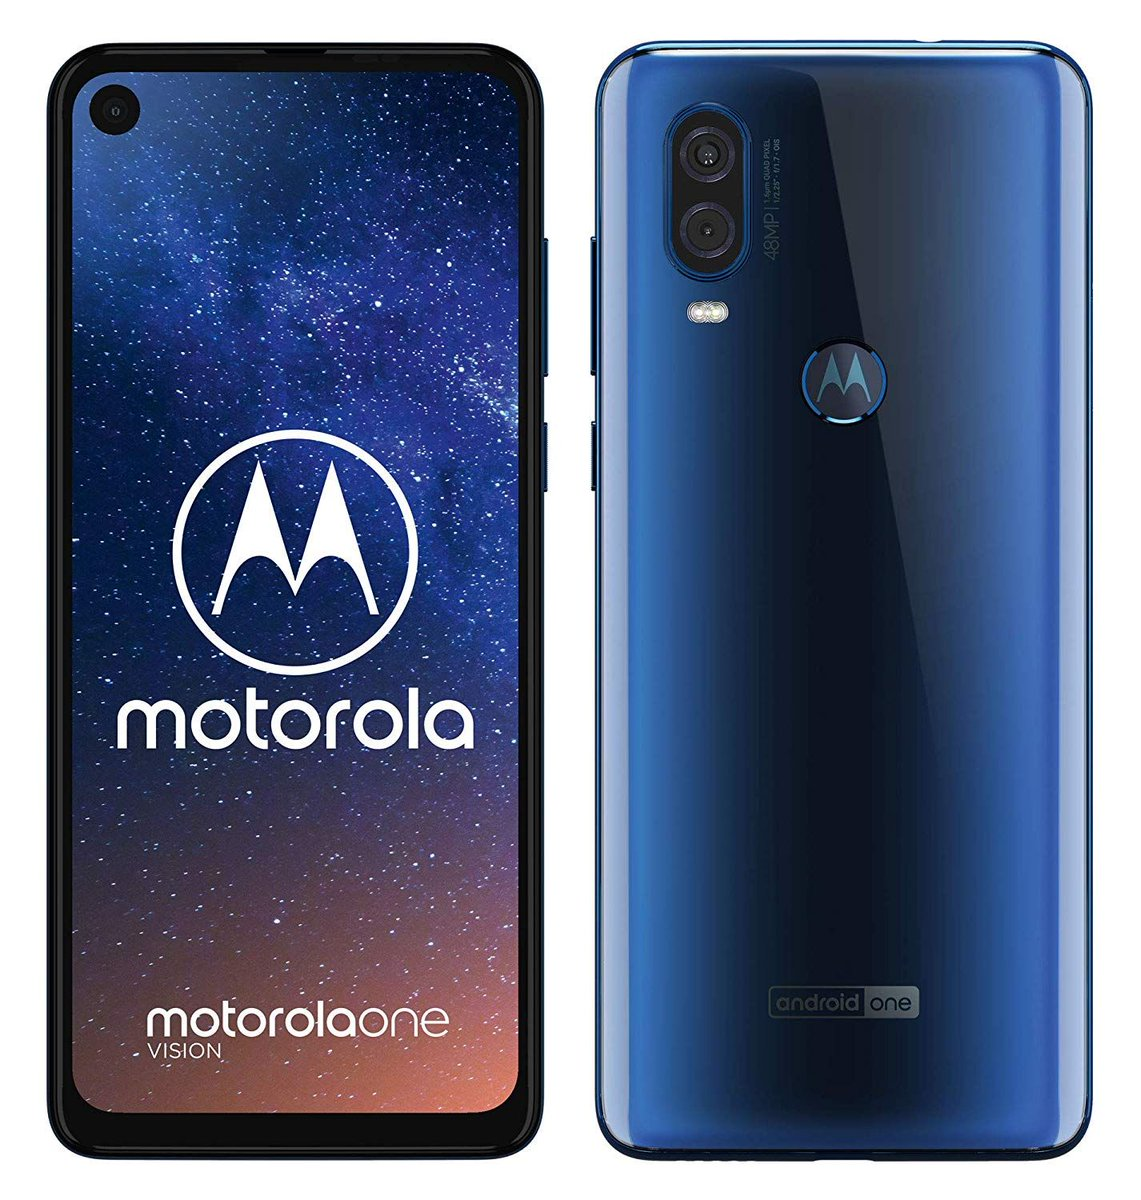 motorola hashtag on Twitter